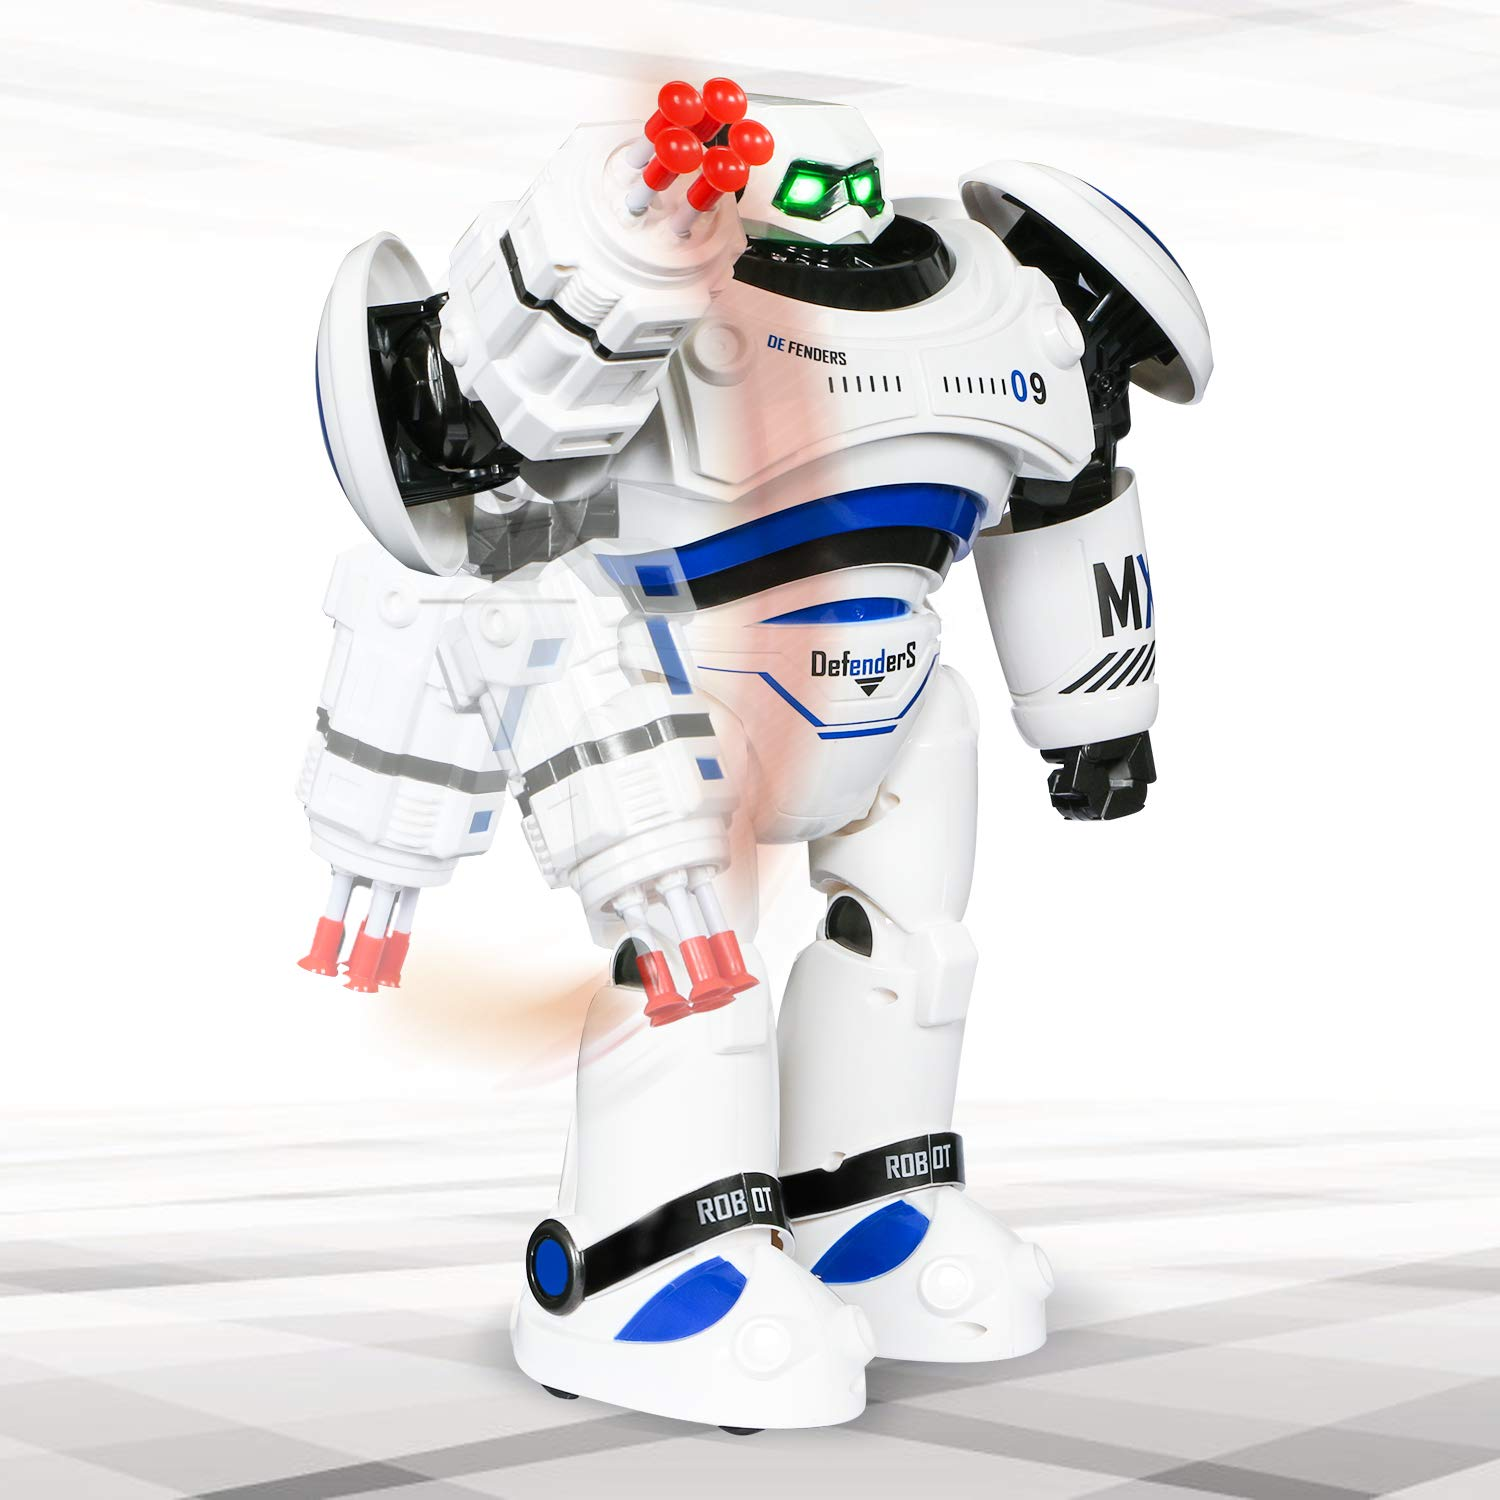 SGILE RC Robot Toy, Programmable Intelligent Walk Sing Dance Robot for Kids Gift Present, White by SGILE (Image #4)